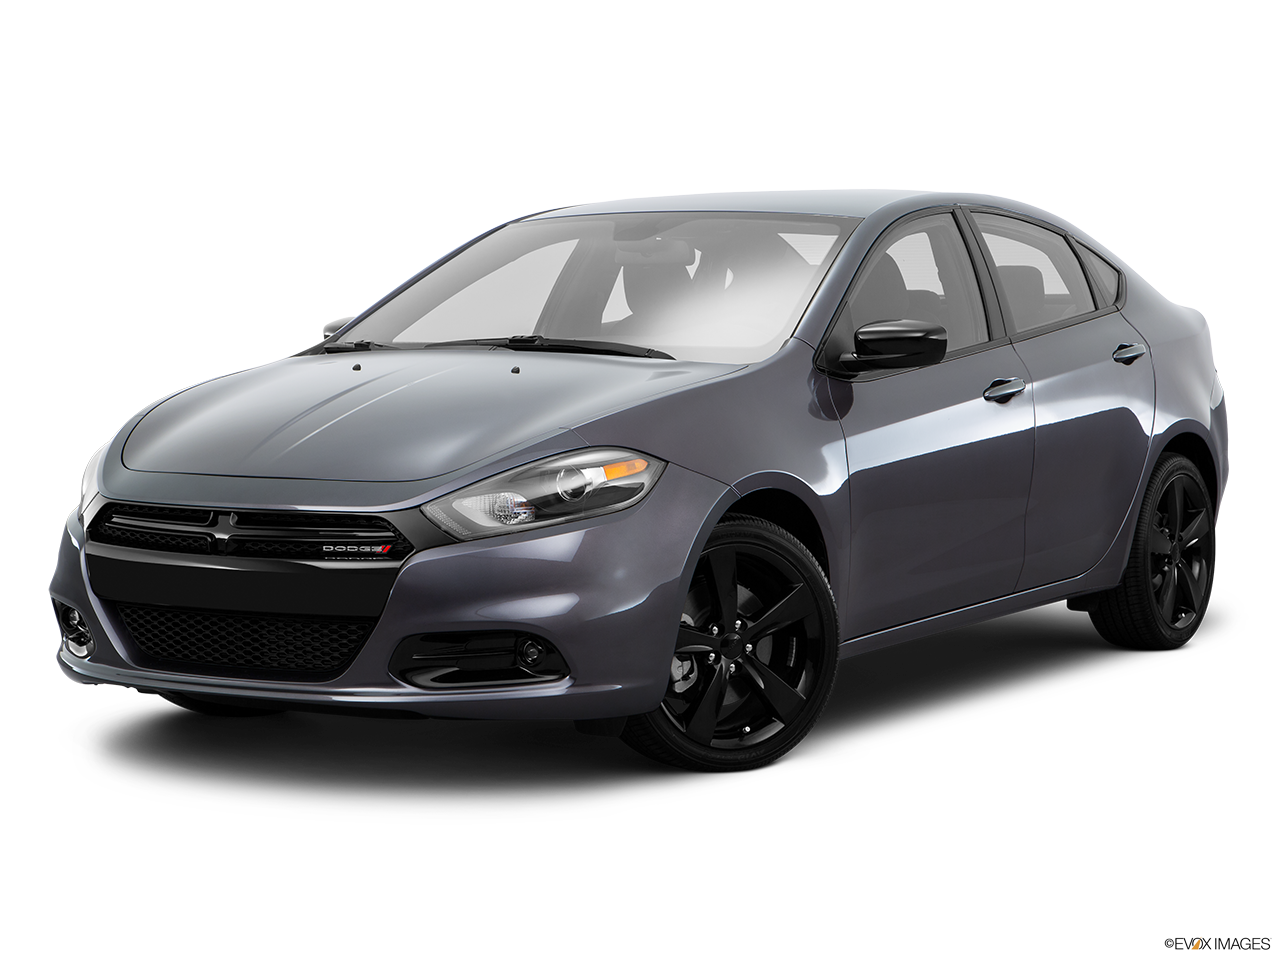 Test Drive A 2016 Dodge Dart at Nashville Chrysler Dodge Jeep RAM in Antioch